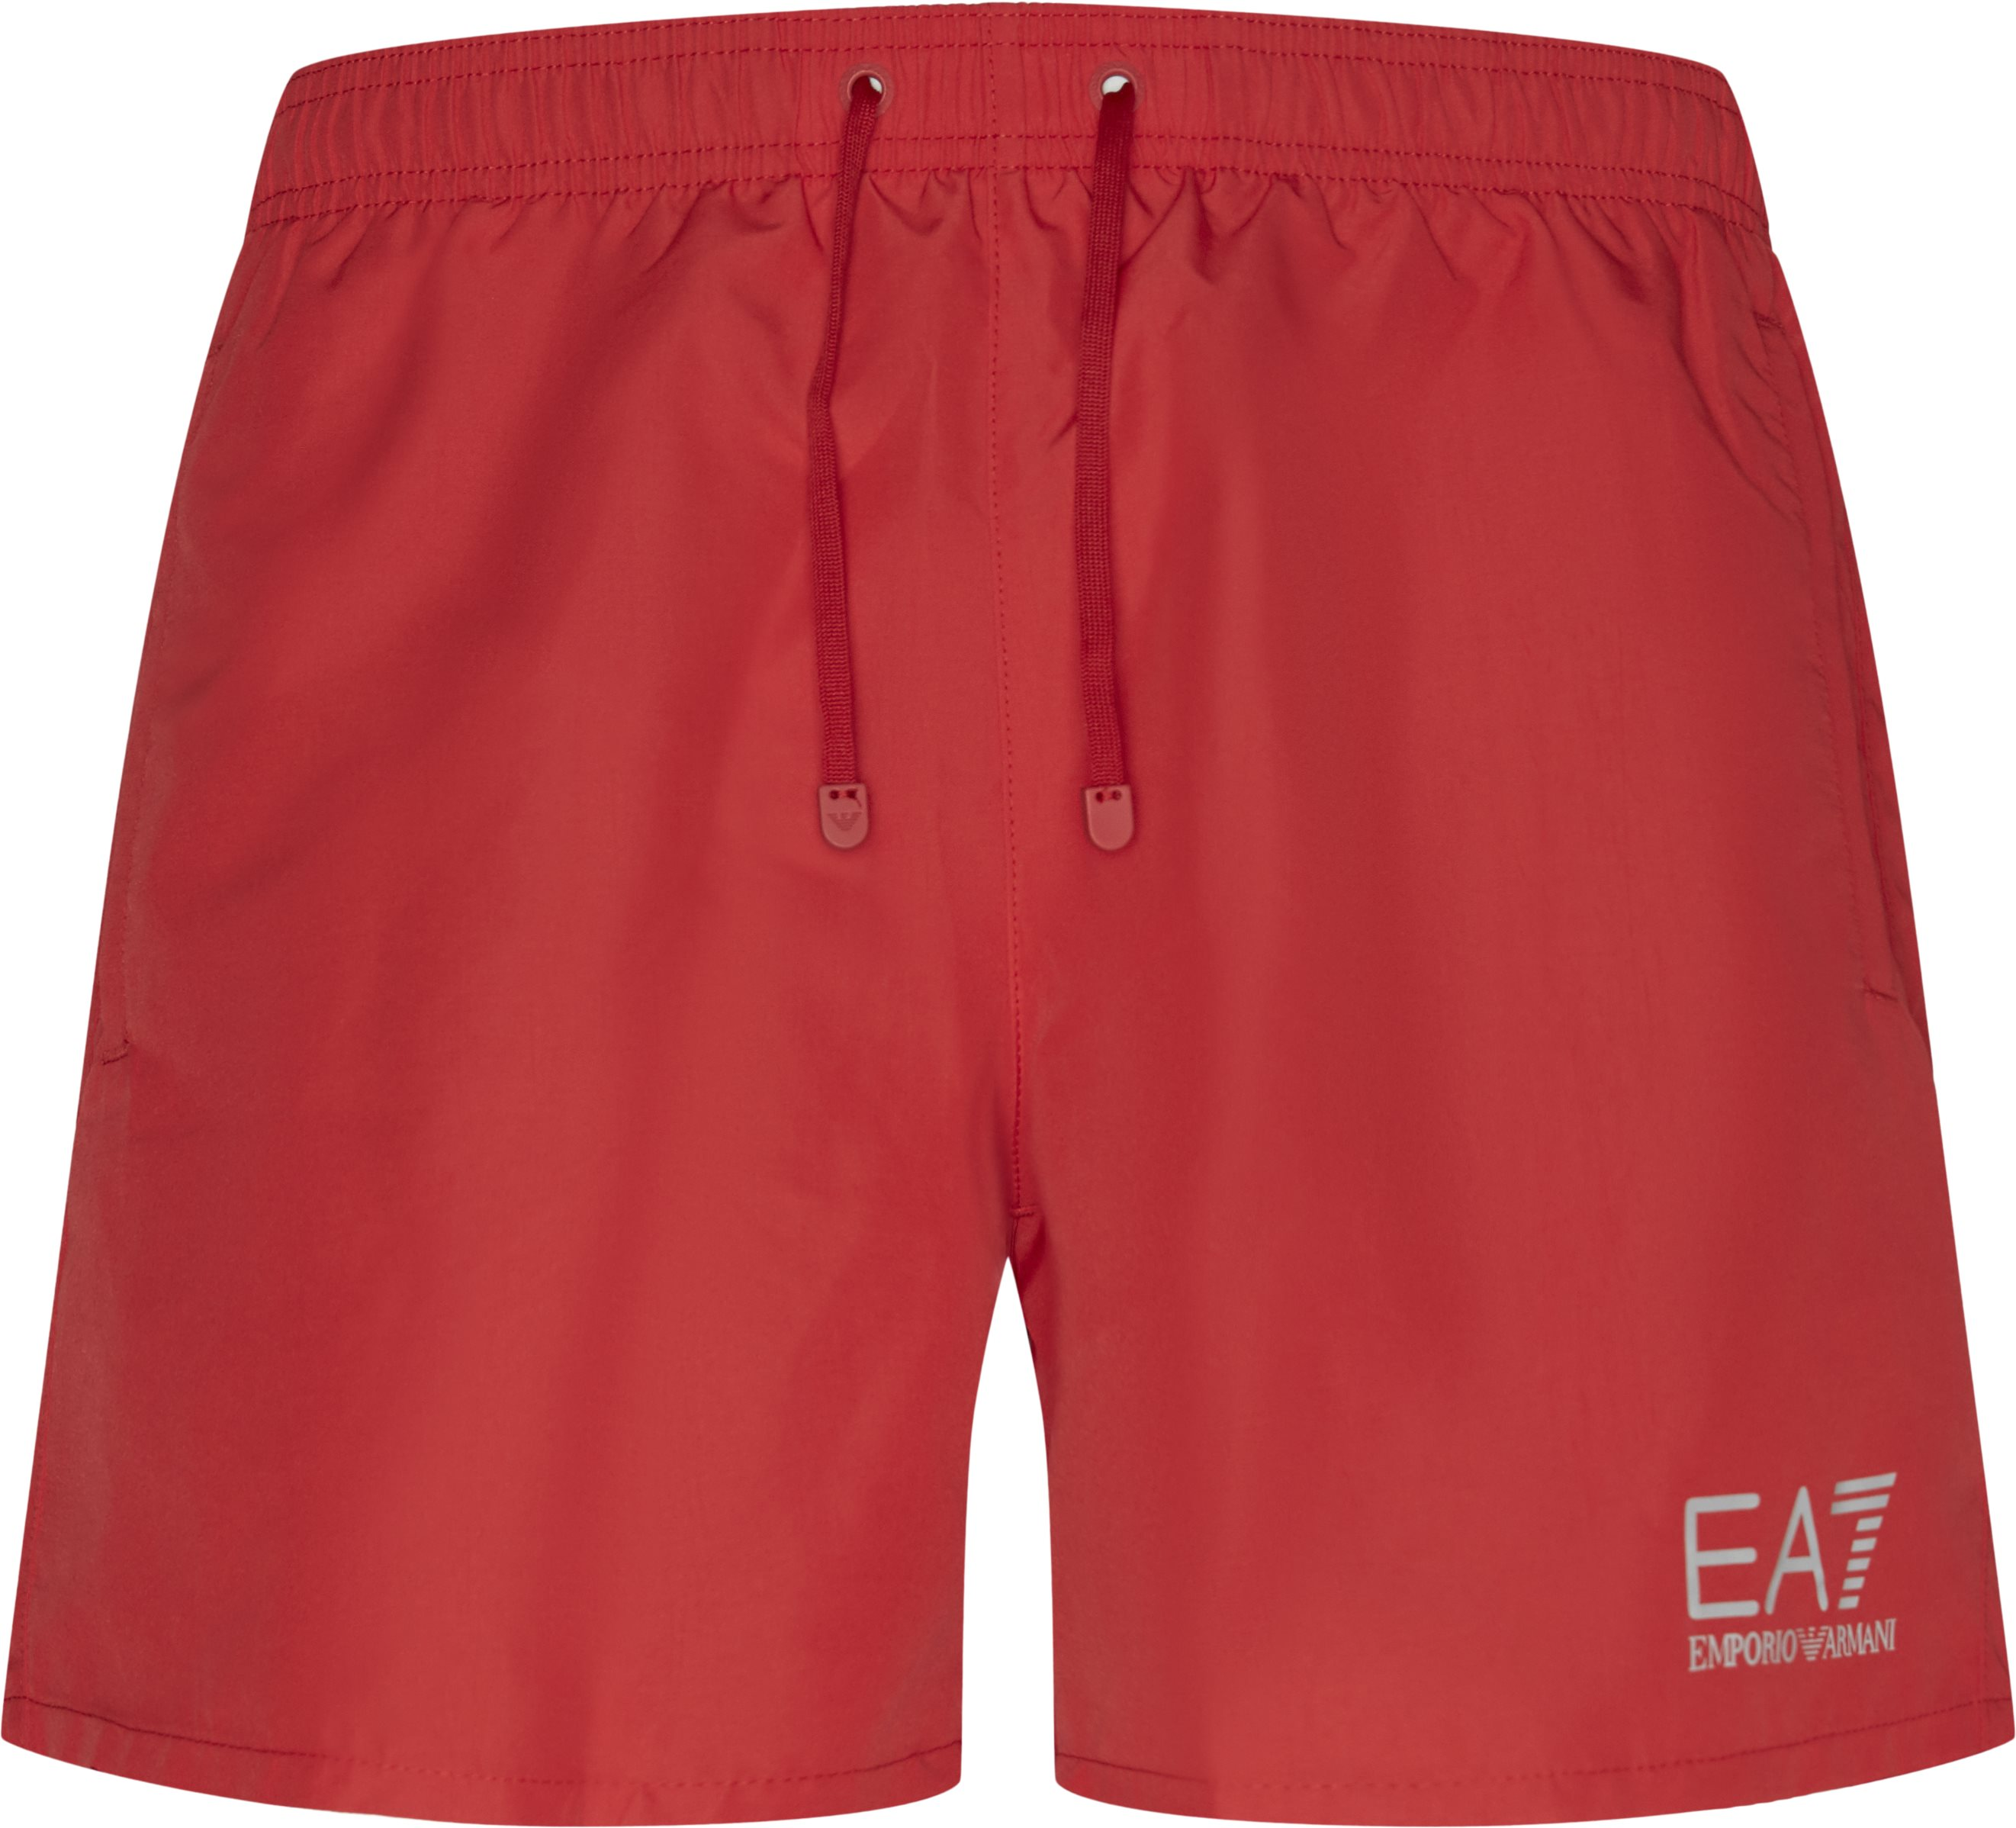 Shorts - Regular - Red